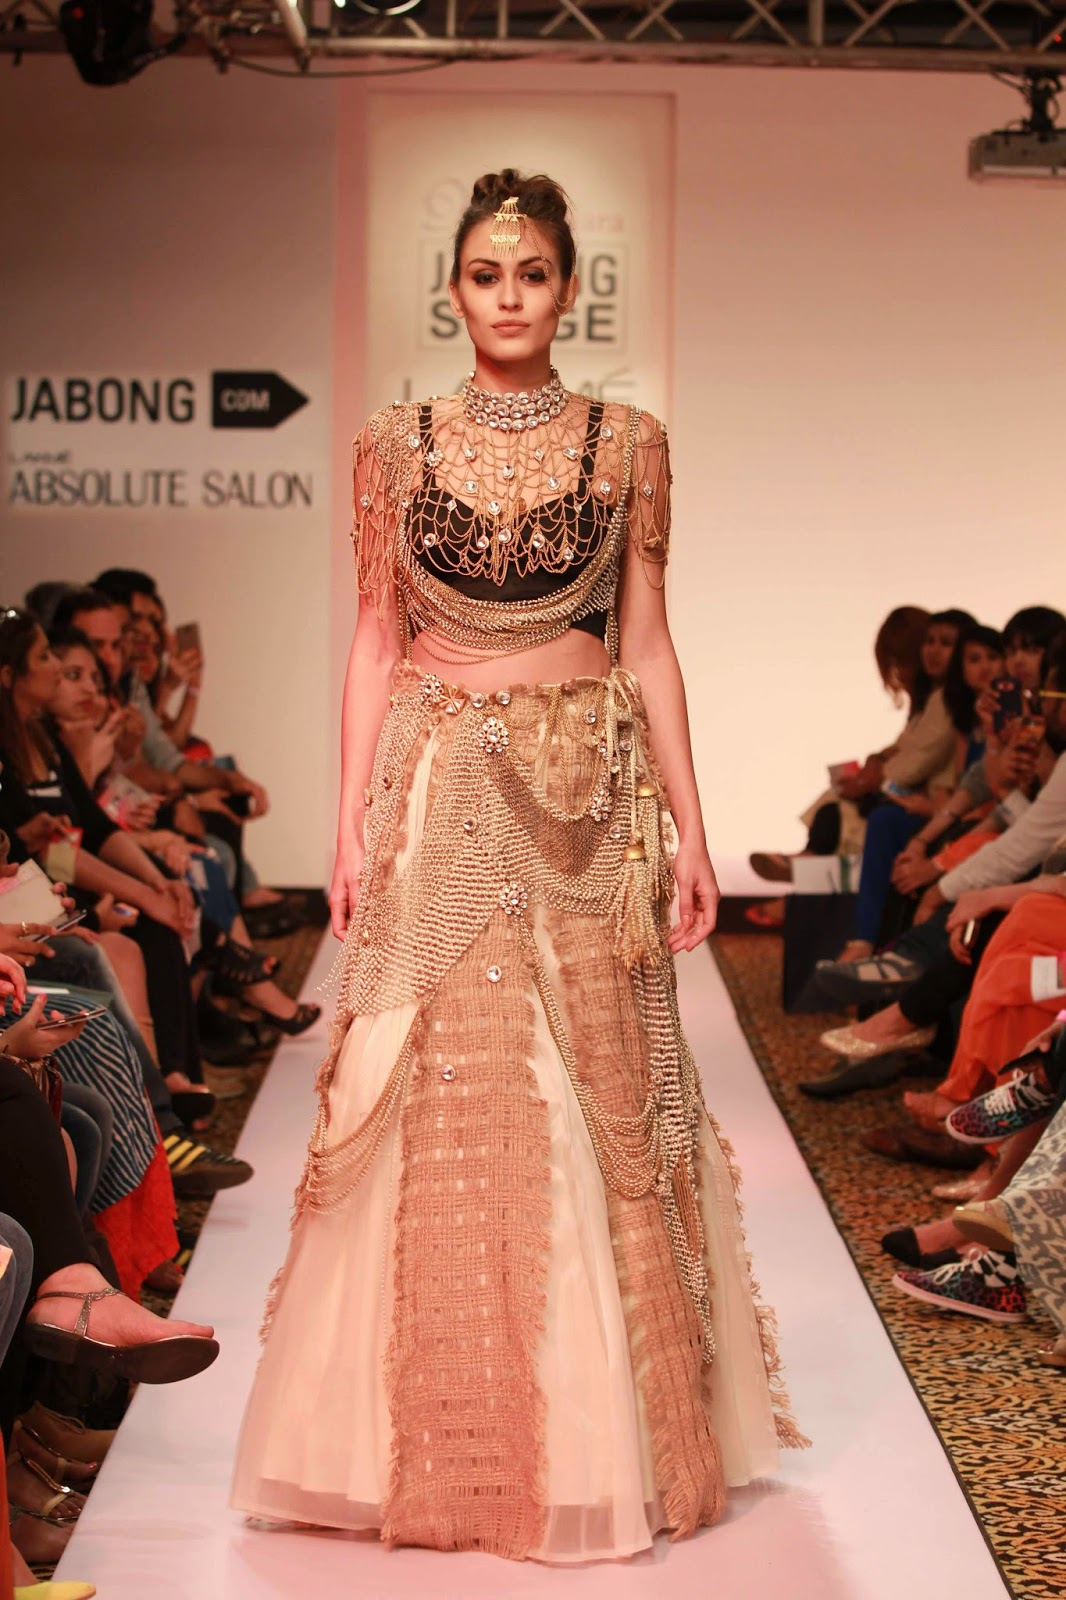 http://aquaintperspective.blogspot.in/, LIFW Day 2, Vasundhara Mantri